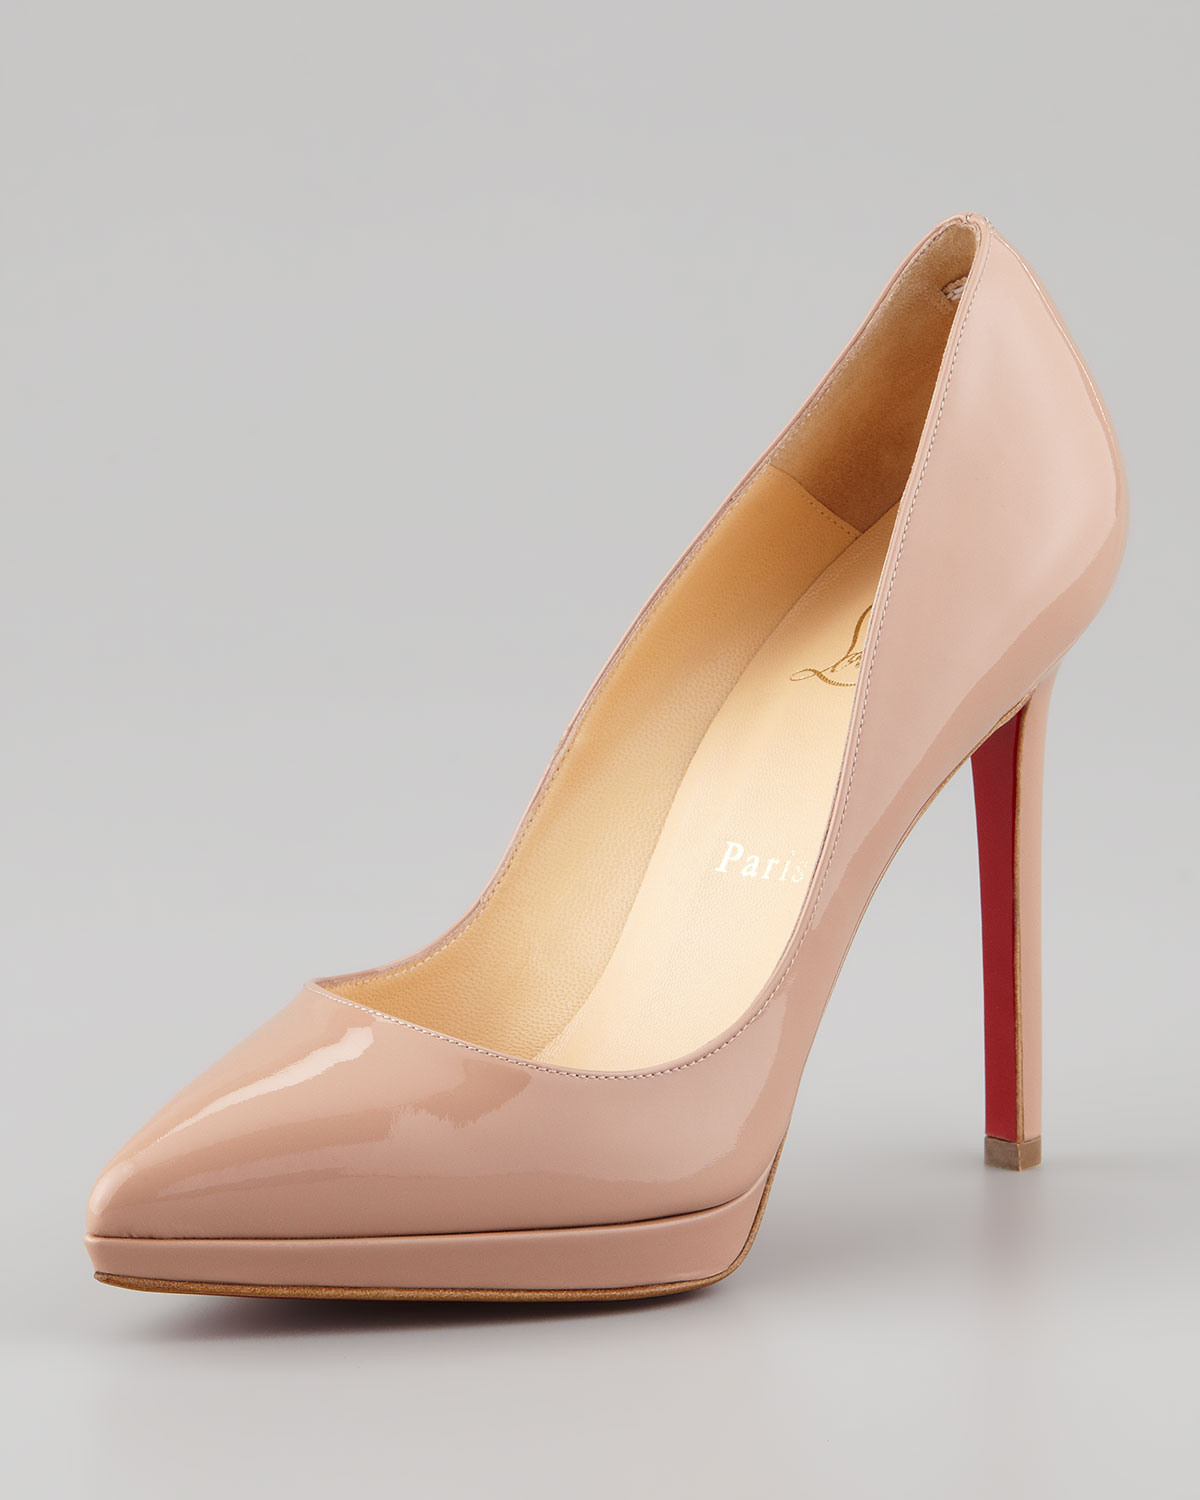 Christian Louboutin Pigalle 120mm Pointed Toe Pumps Nude